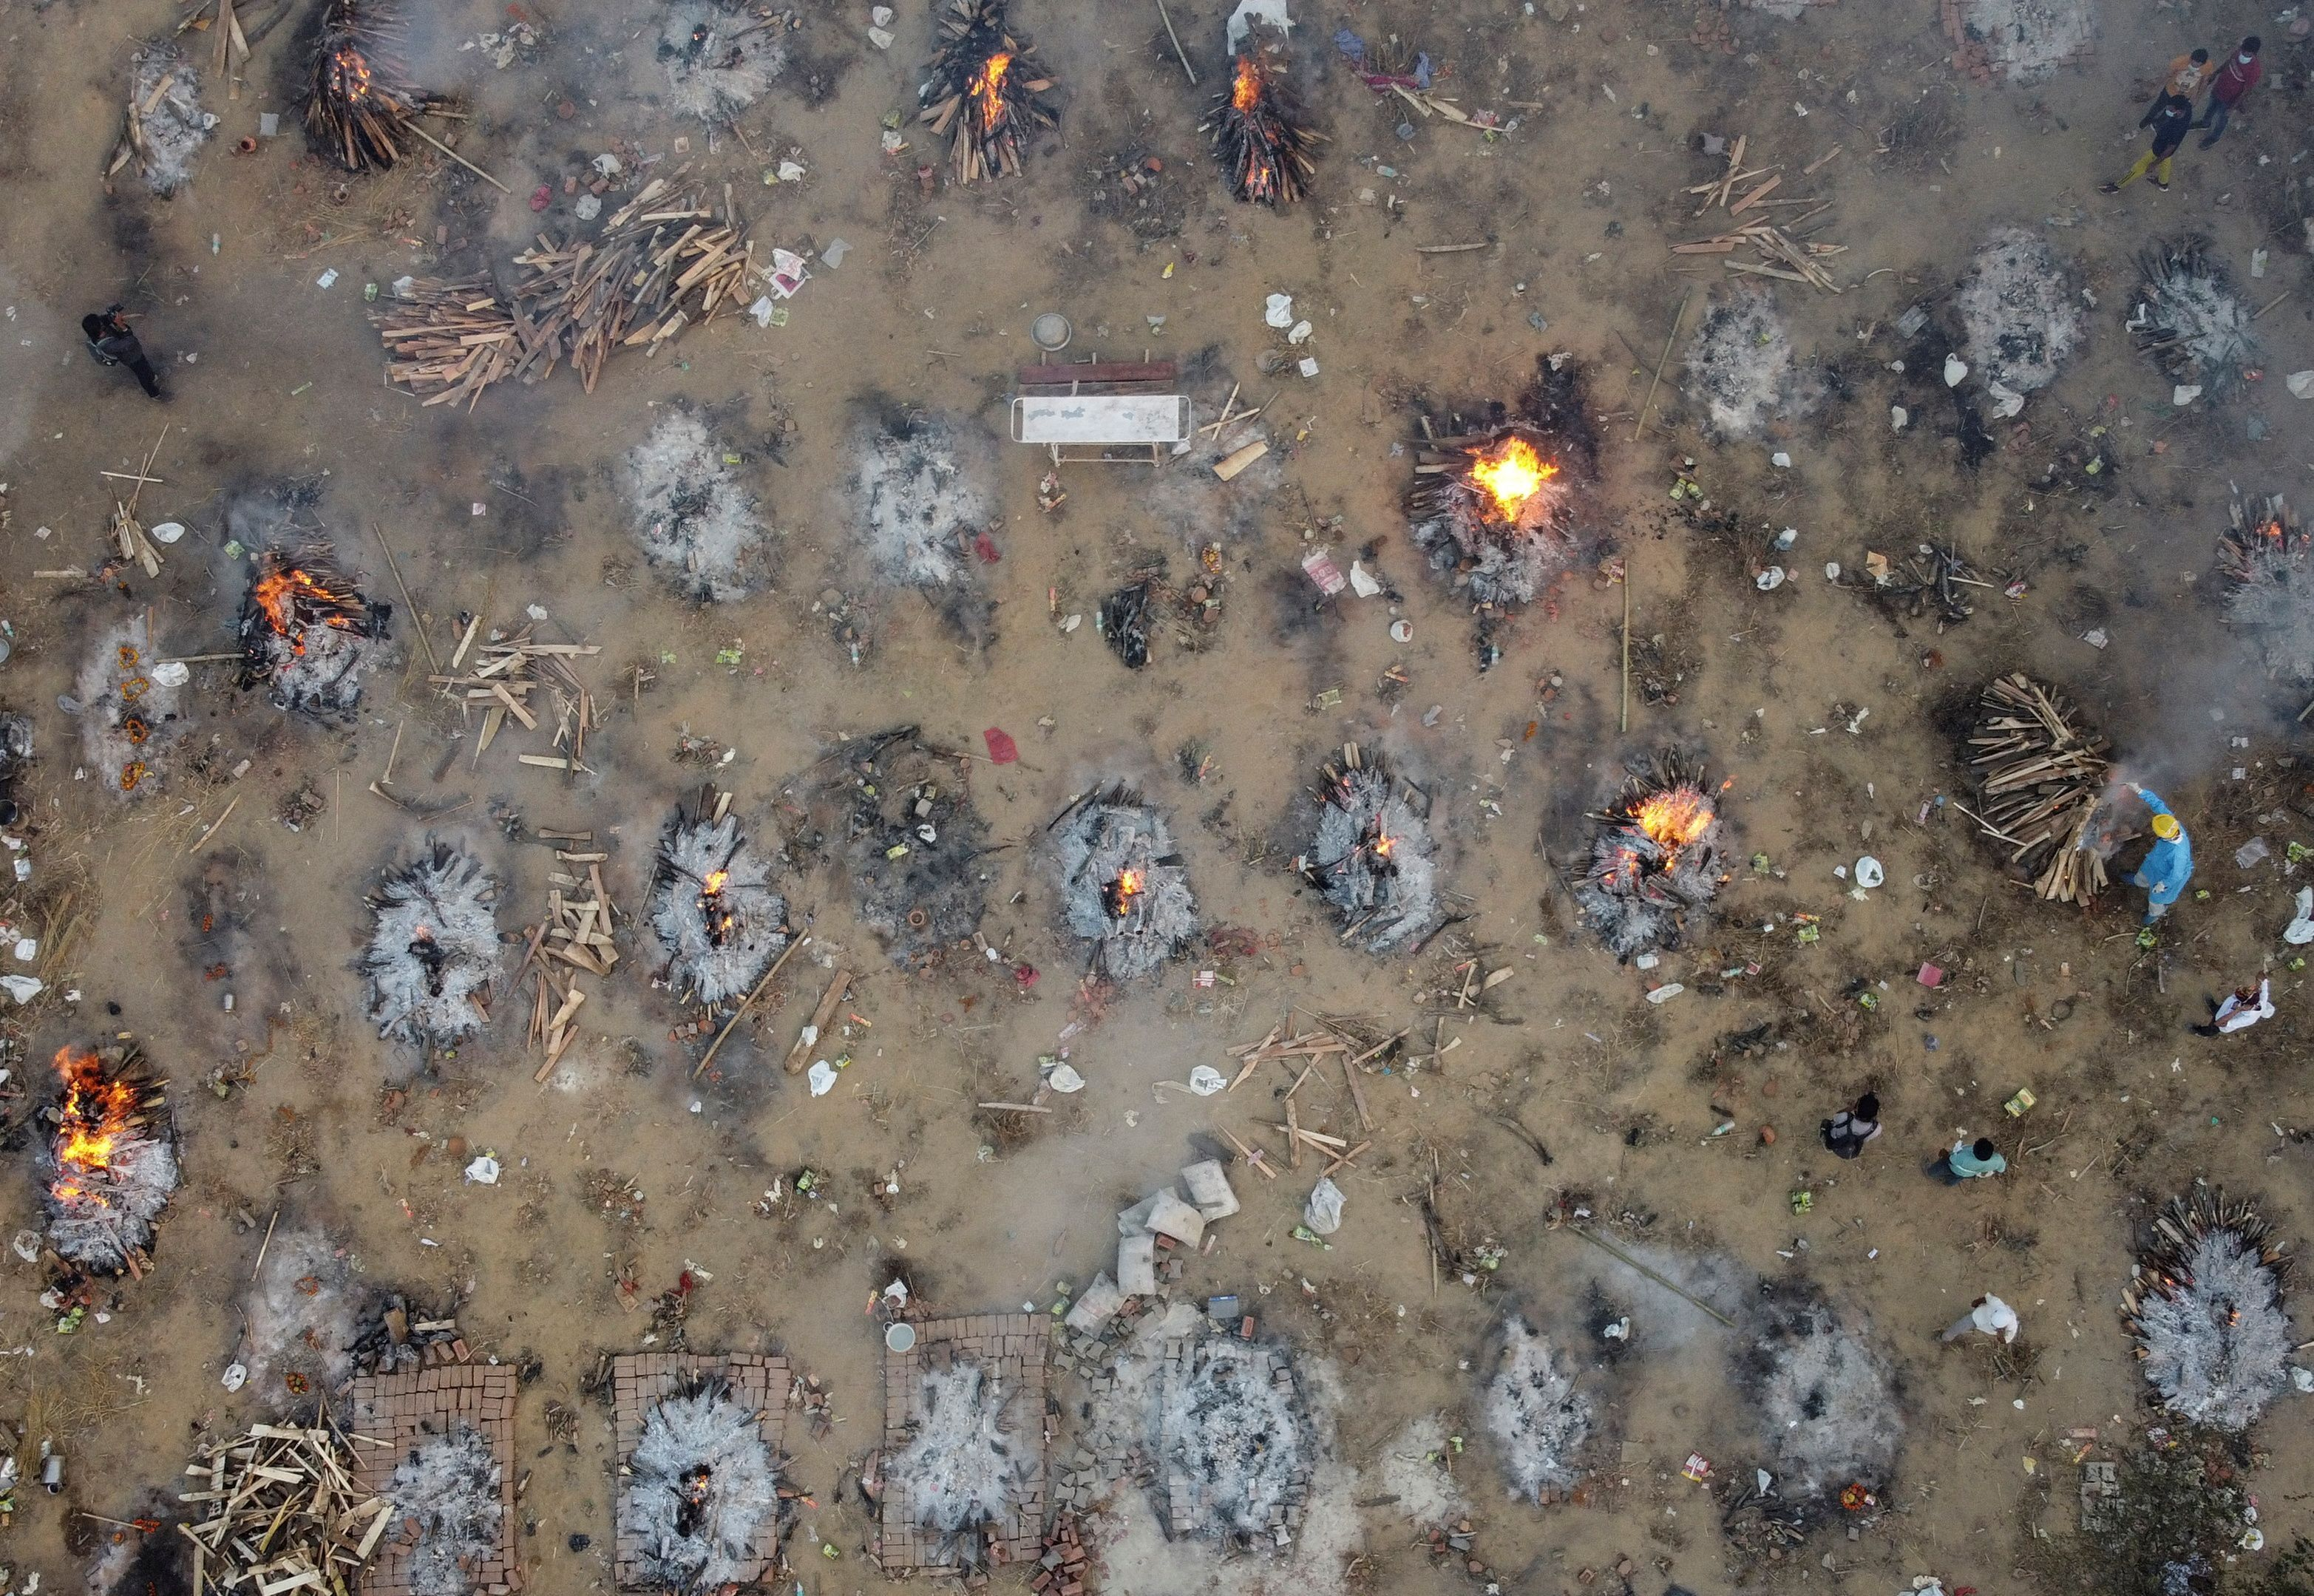 Mass cremations begin as India's capital faces deluge of COVID-19 deaths |  Reuters